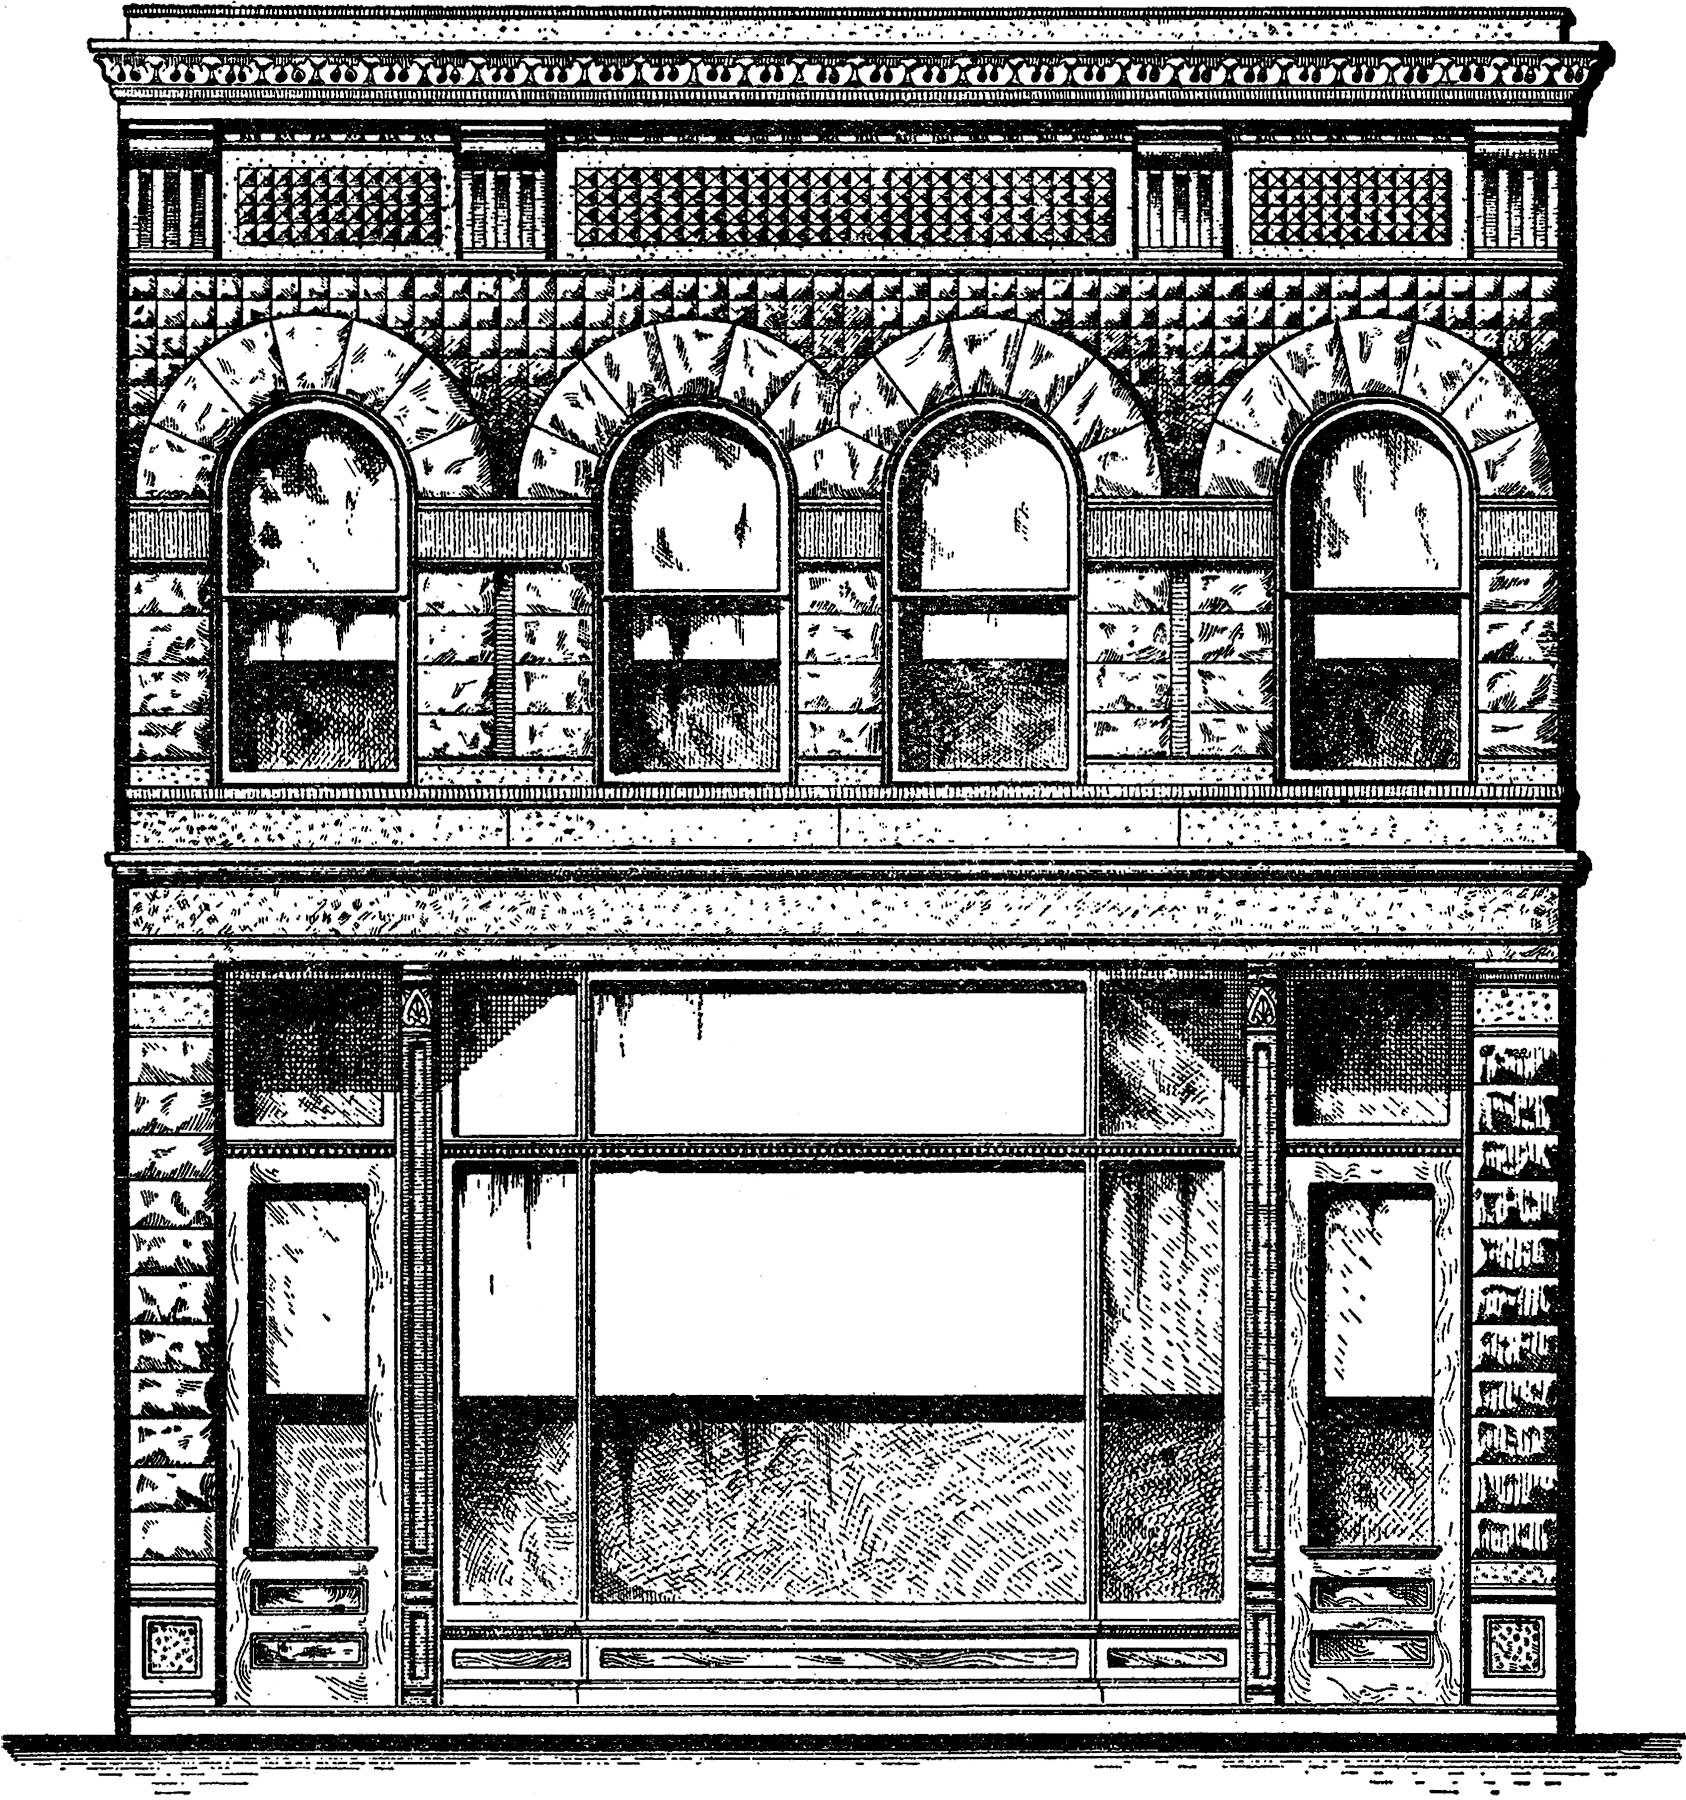 Architectural Town Shop Image